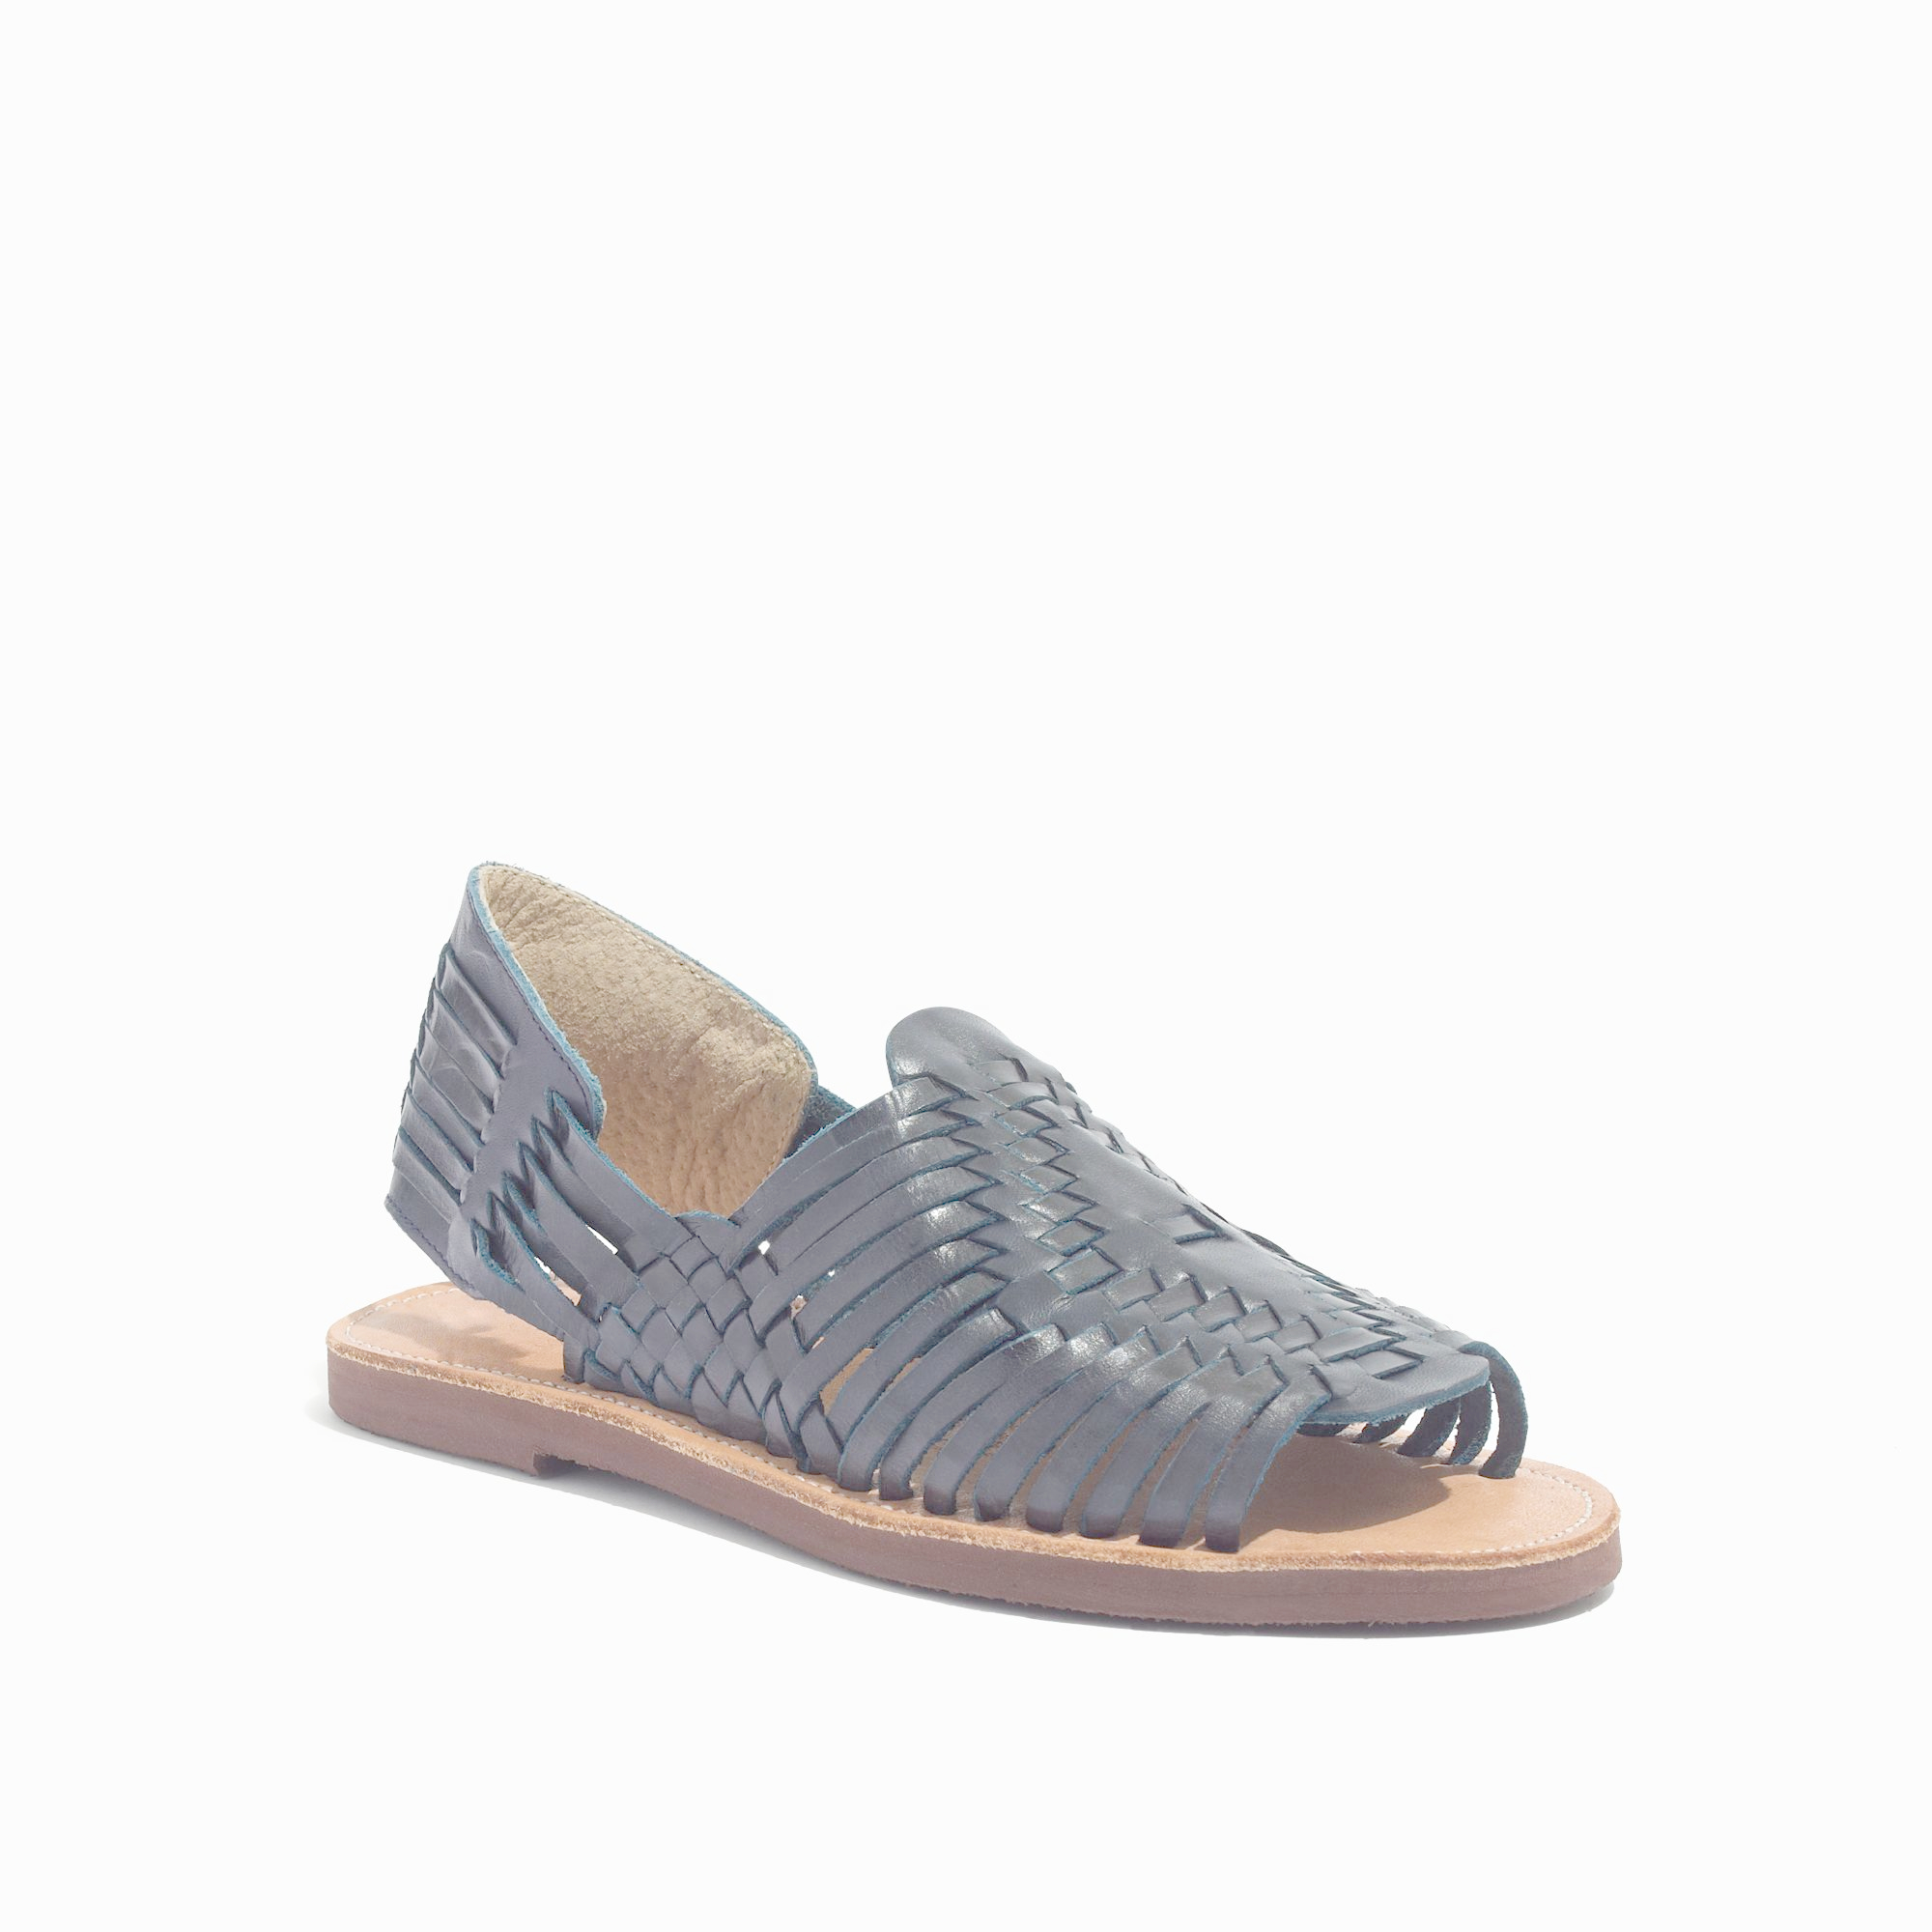 Madewell Chamula Chicen Open Toe Huarache Sandals In Gray